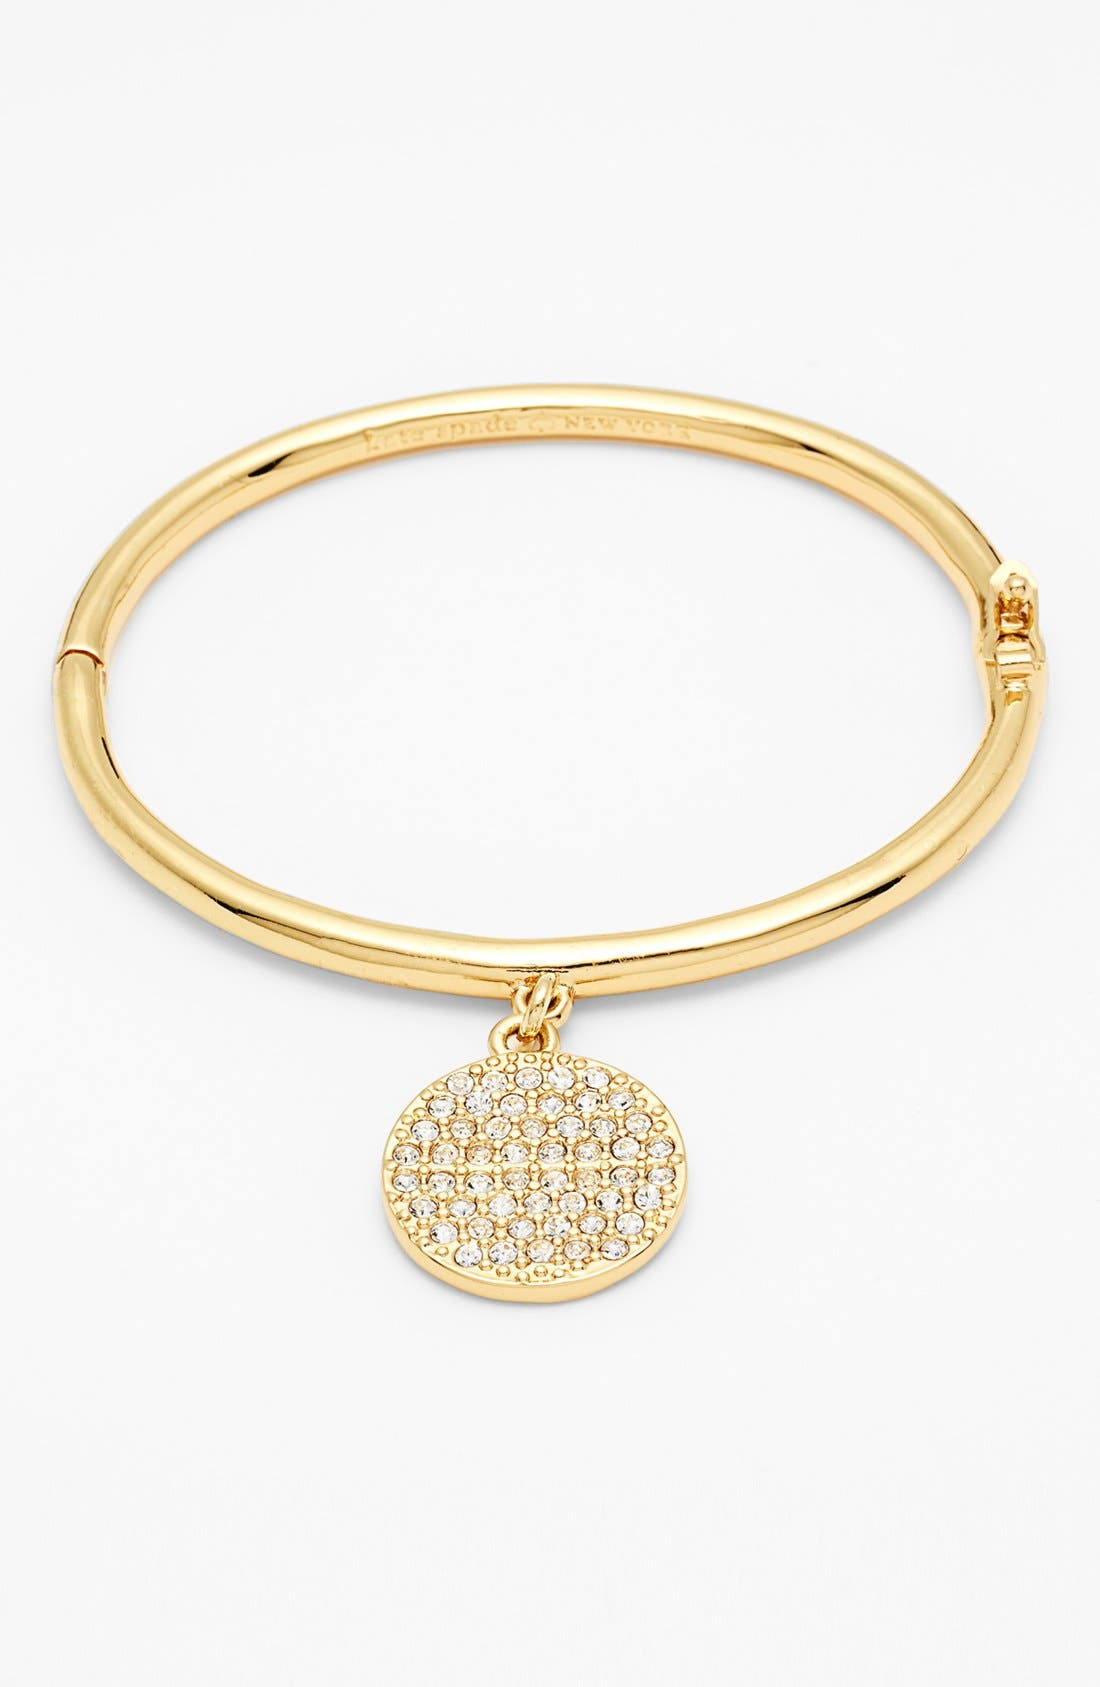 Main Image - kate spade new york 'idiom - all that glitters' boxed pavé charm bangle